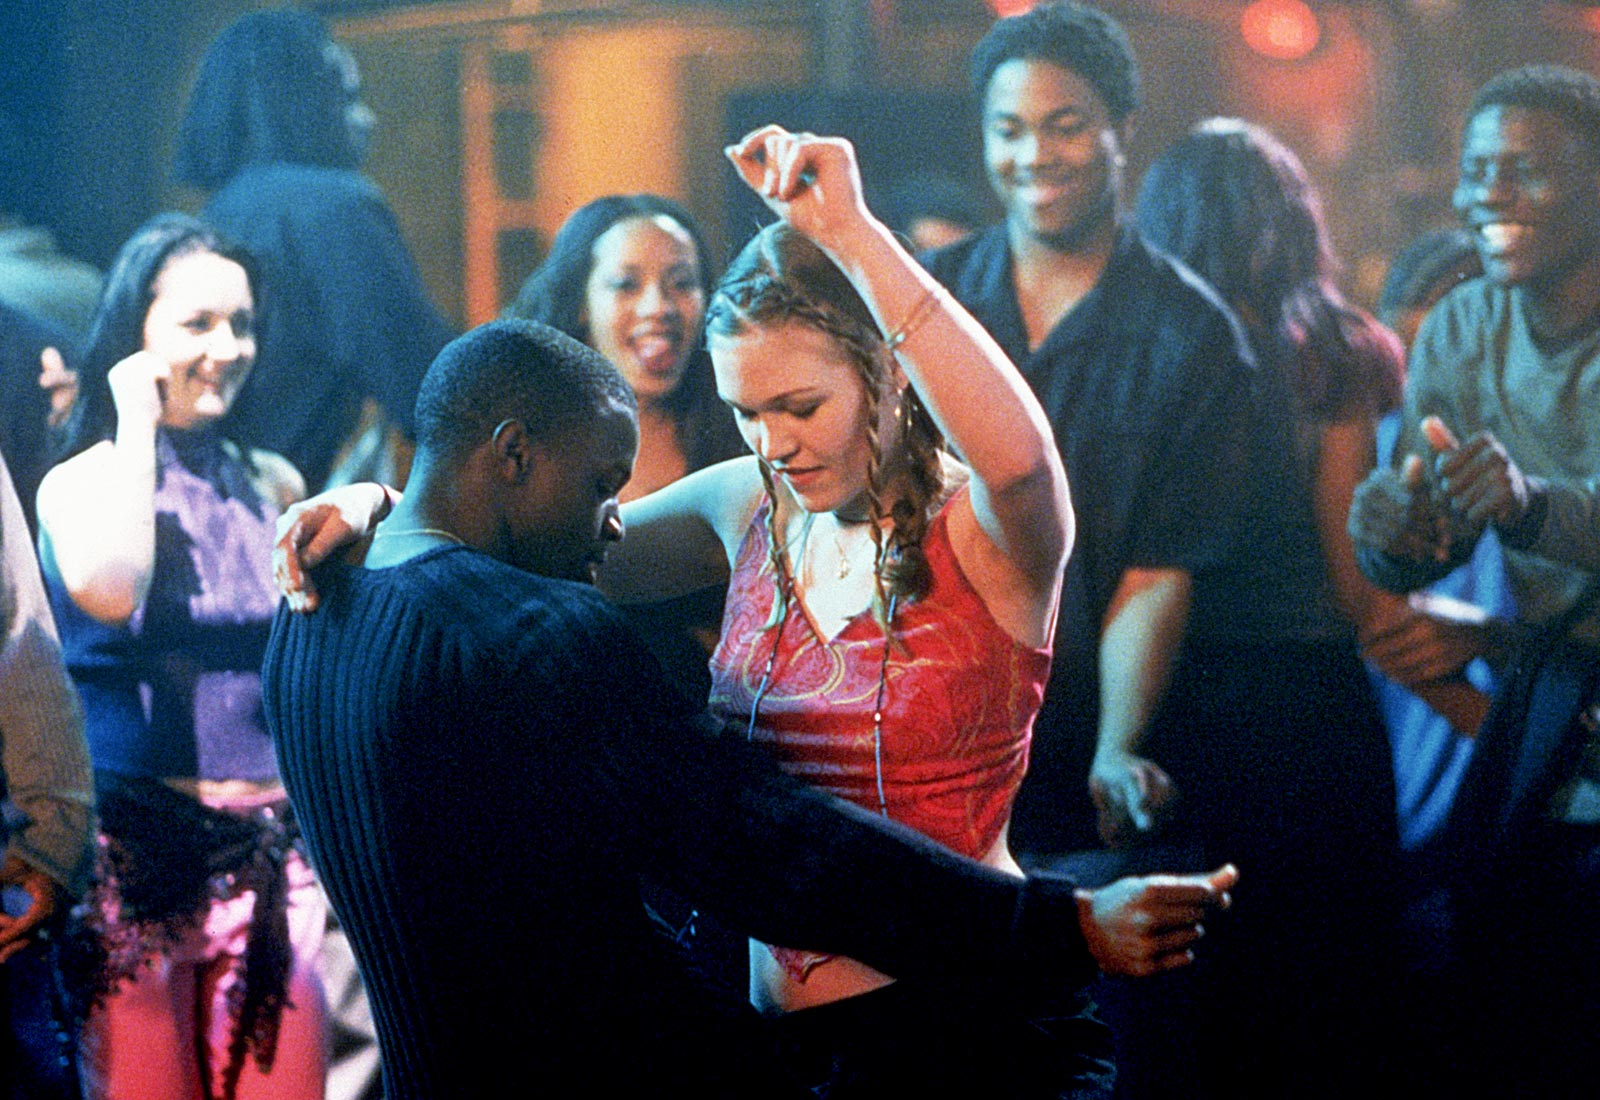 save the last dance 2001 full movie online free